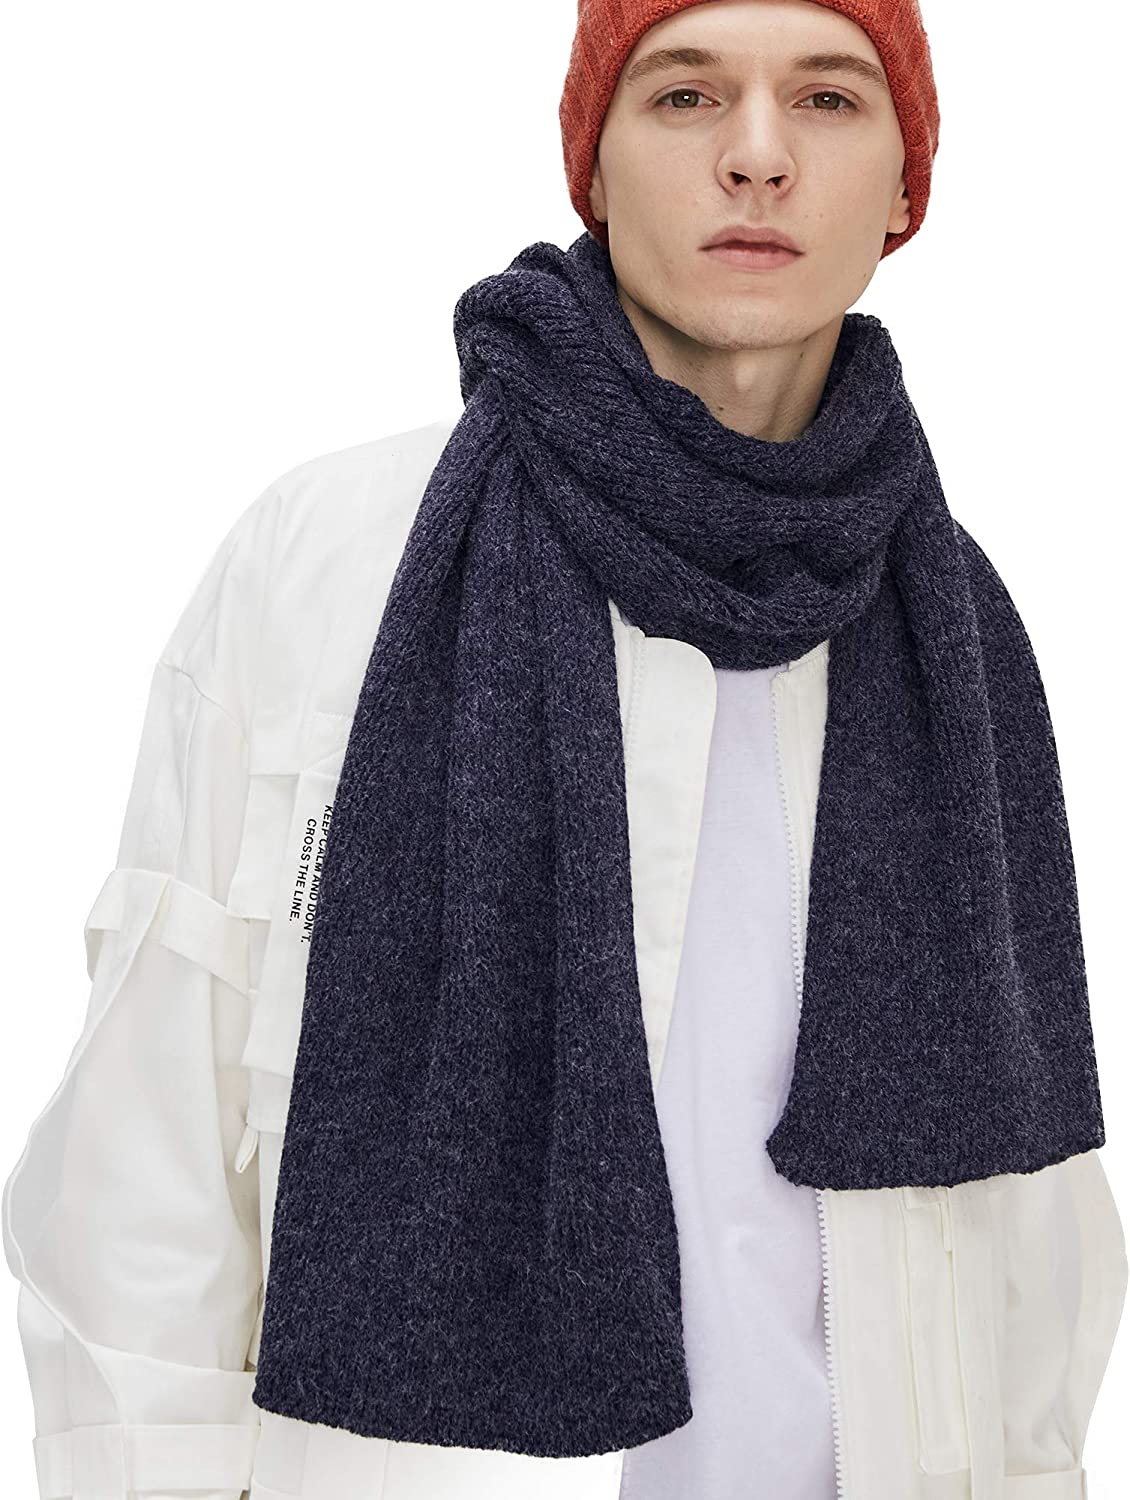 CACUSS Men's Max 89% OFF Solid Winter Scarf Knitted Warm Max 54% OFF Neckwear Long Soft